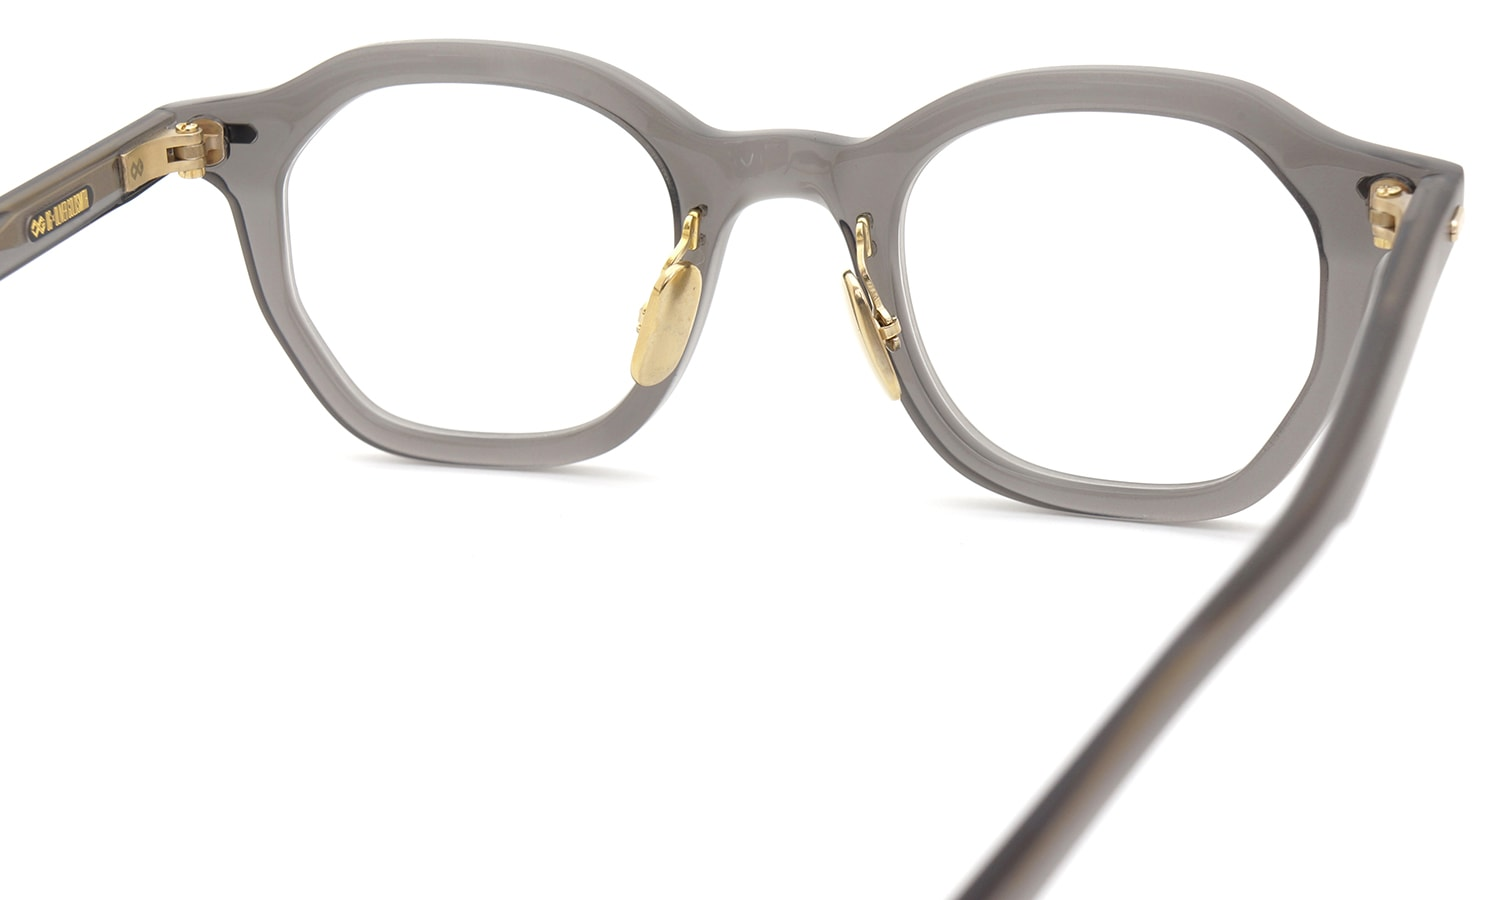 OG × OLIVER GOLDSMITH Re:BETSY 45 リ:ベッツィ 7